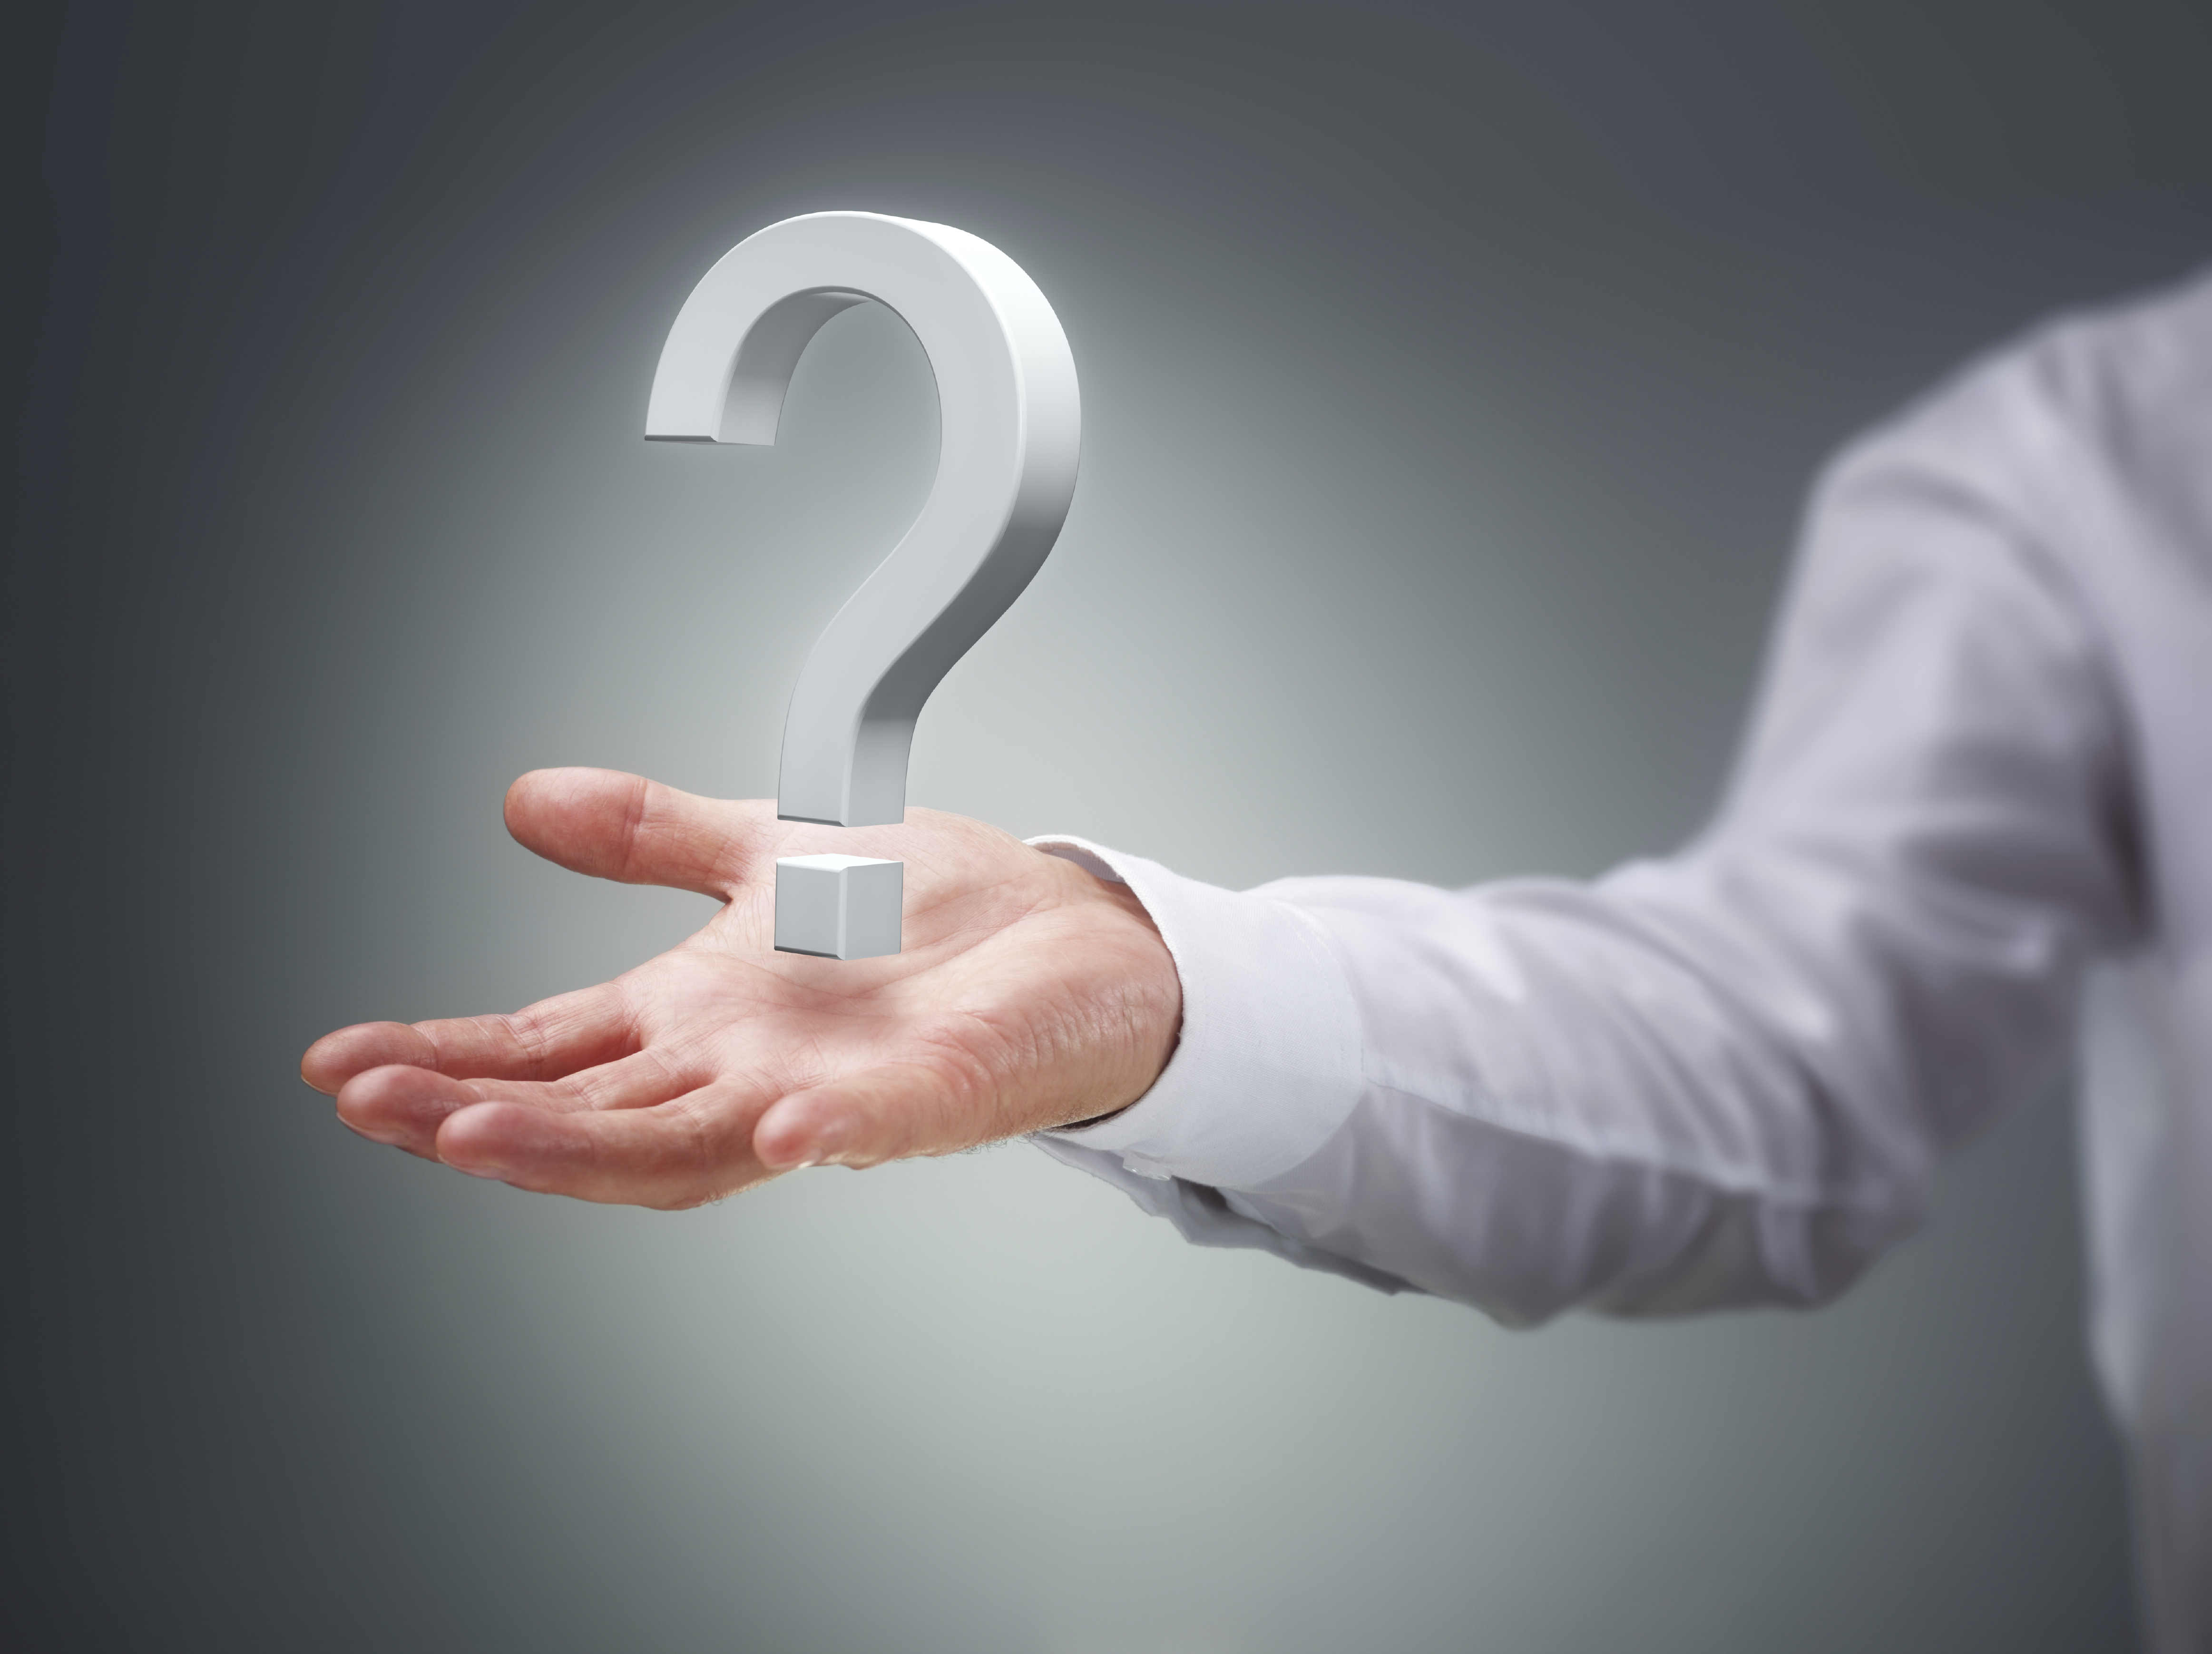 Businessman holding a virtual question mark concept for confusion, choice, searching or decisions